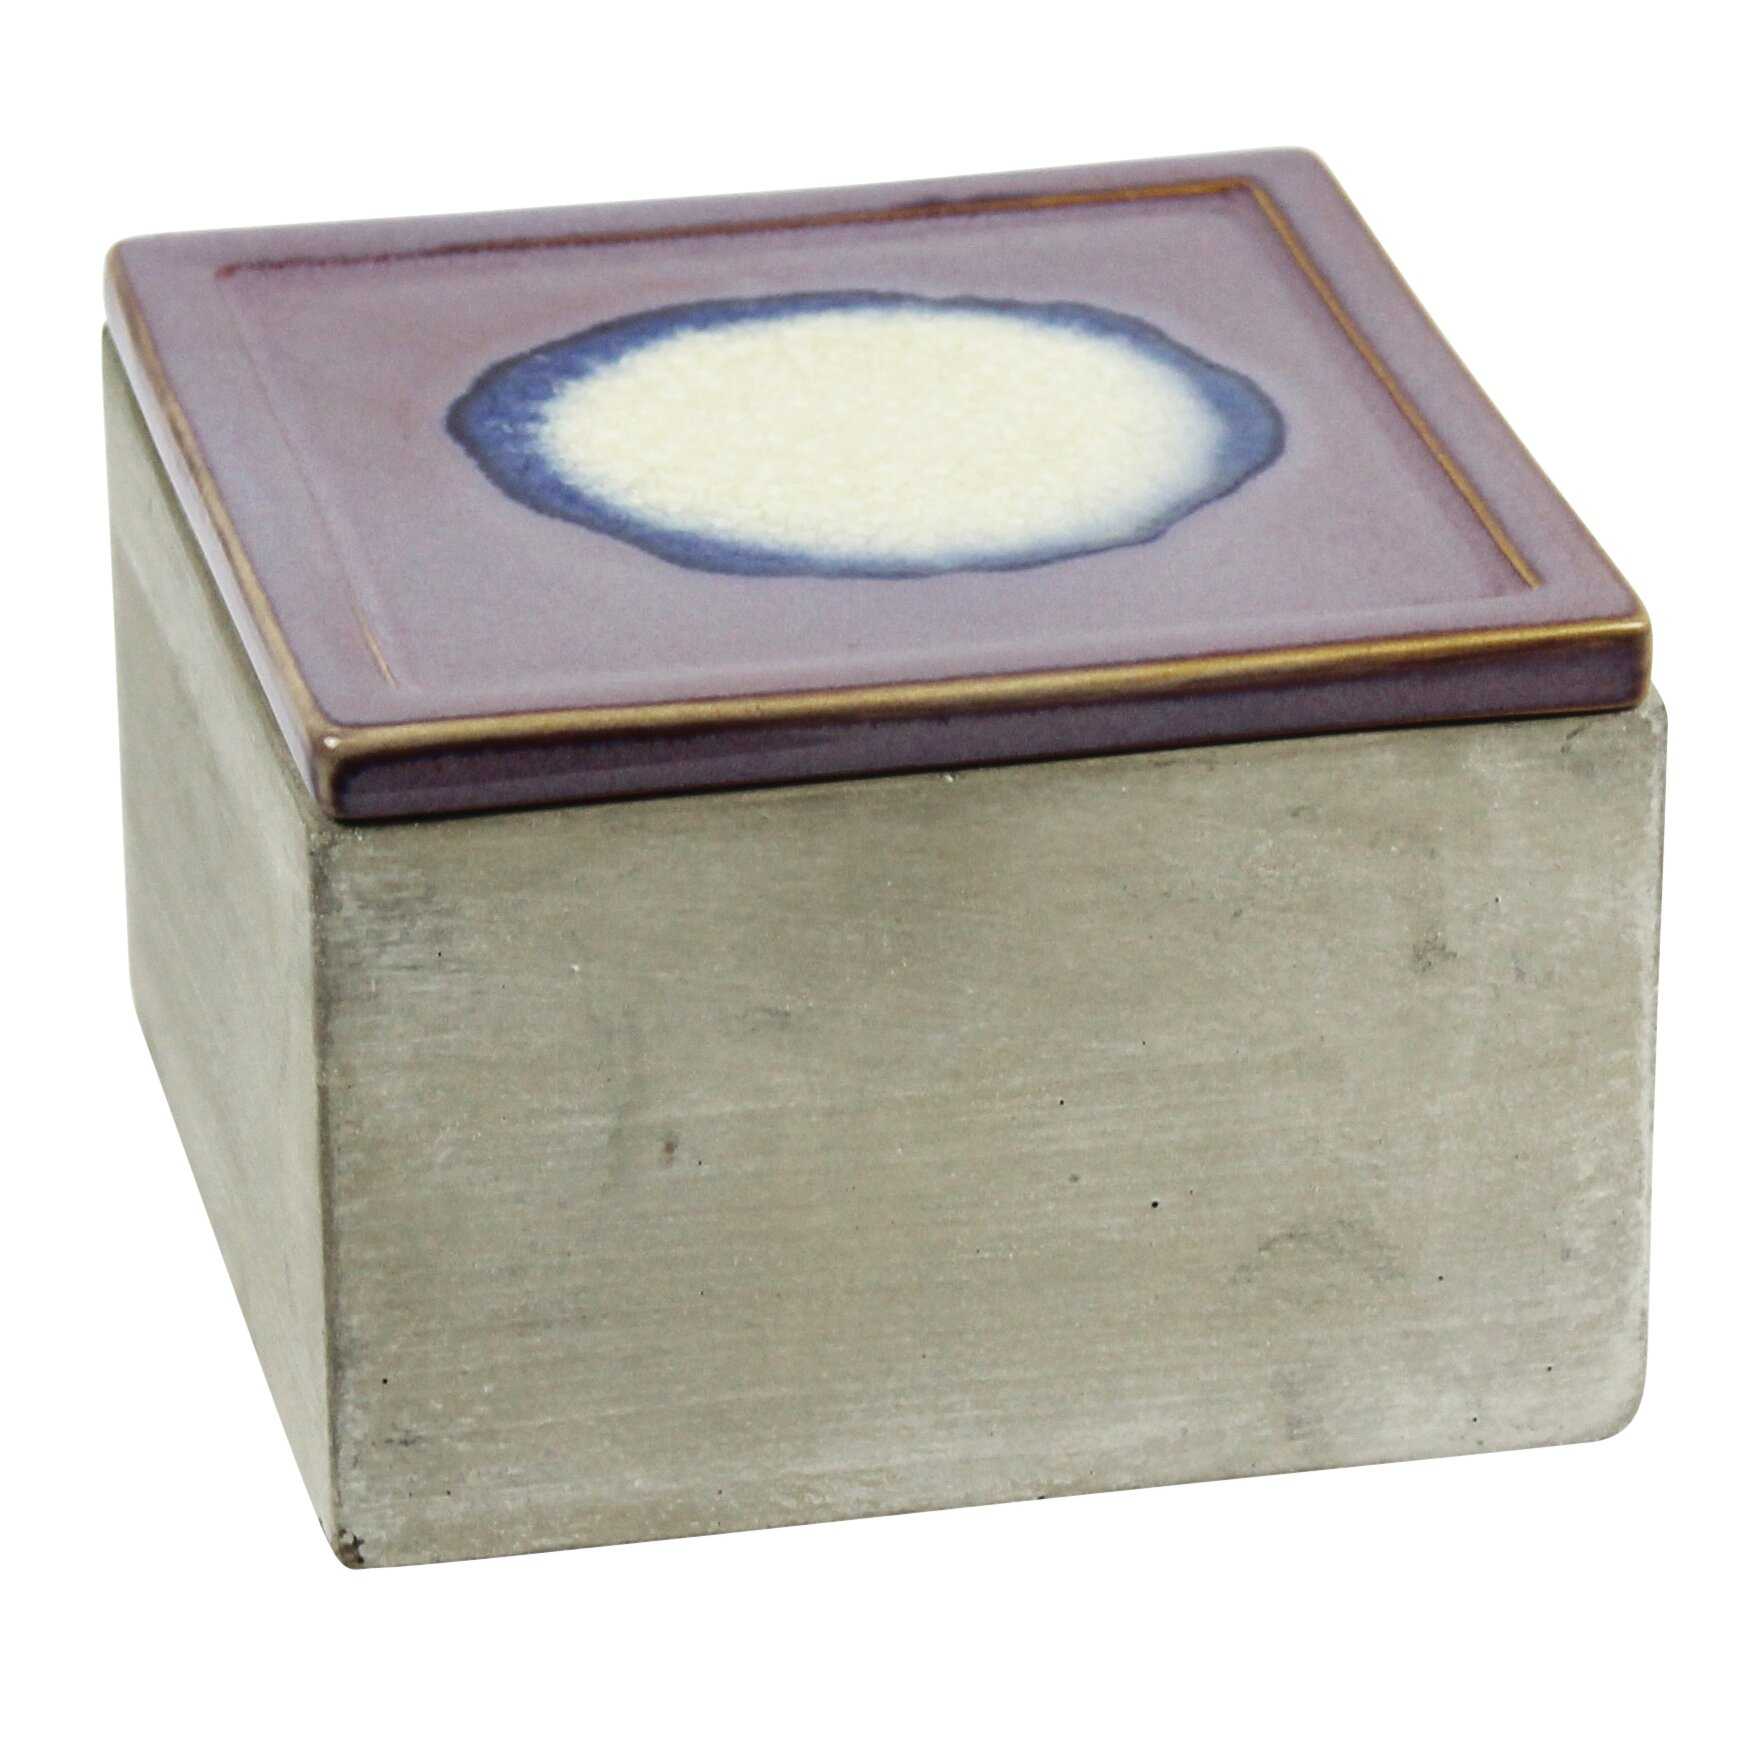 cement decorative box with rose lid - Decorative Boxes With Lids